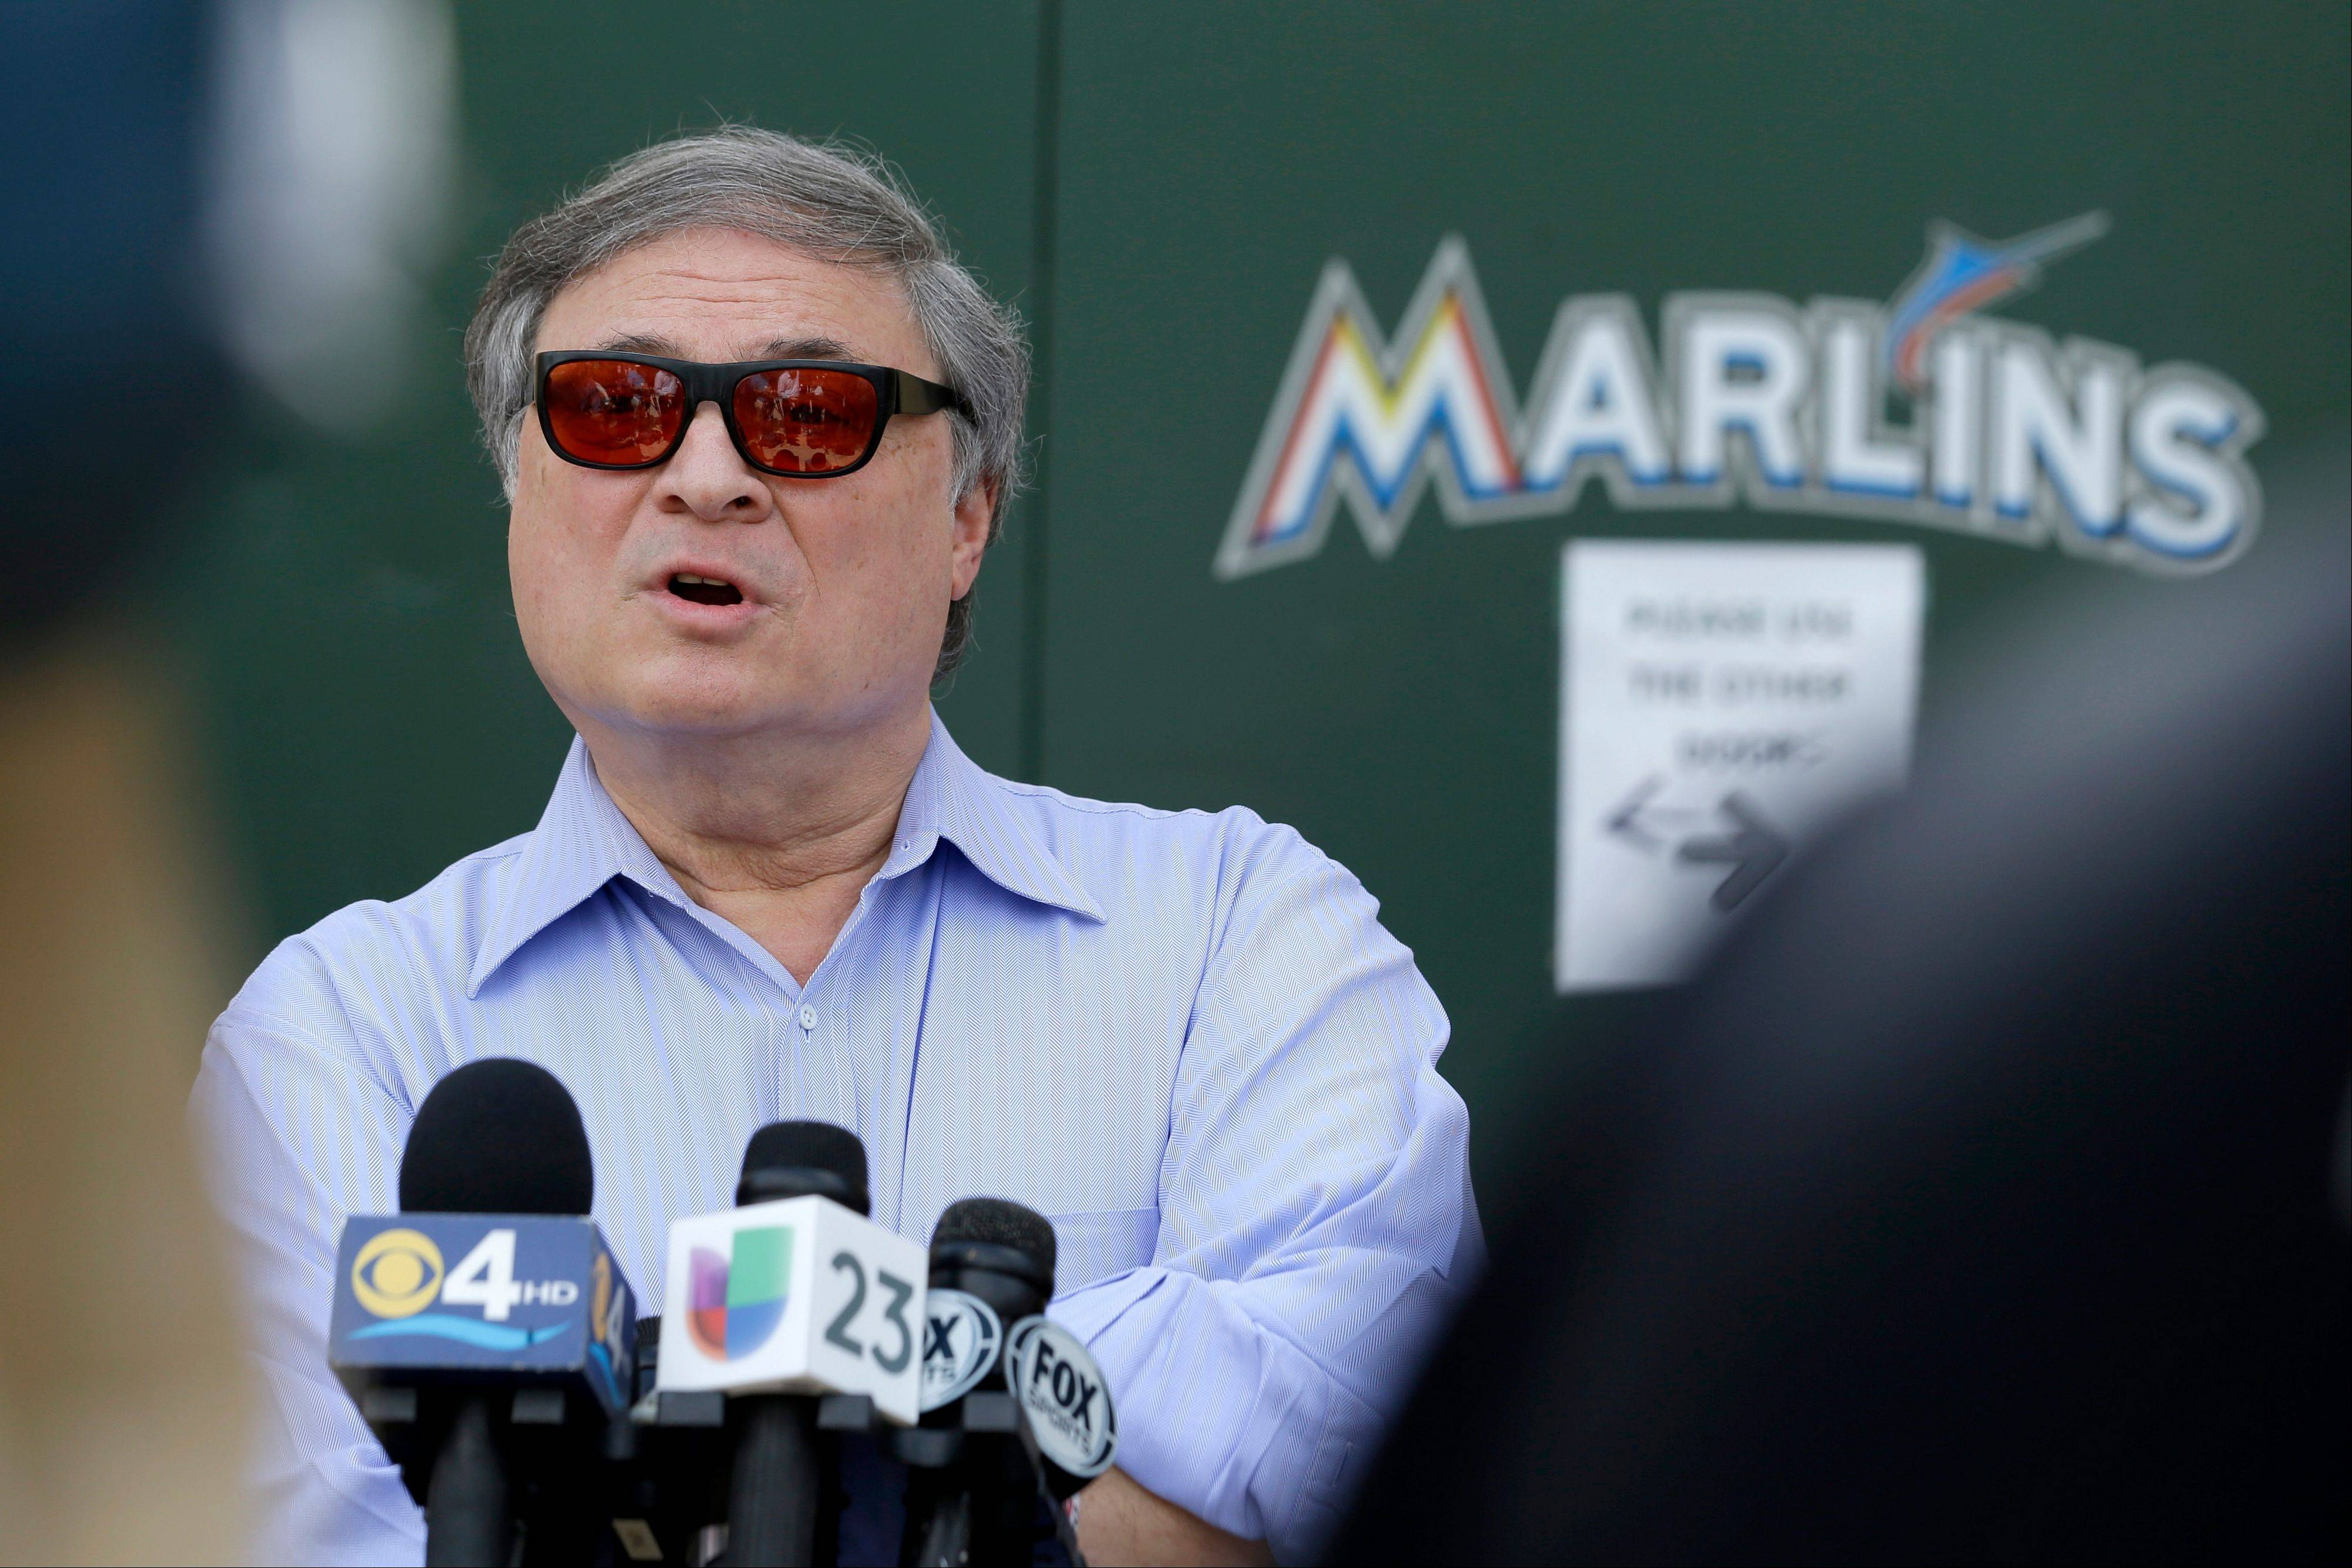 Miami Marlins owner Jeffrey Loria cut short a news conference outside of the team's spring training facility after he was peppered with questions about his reduced payroll and breakup of last year's team.